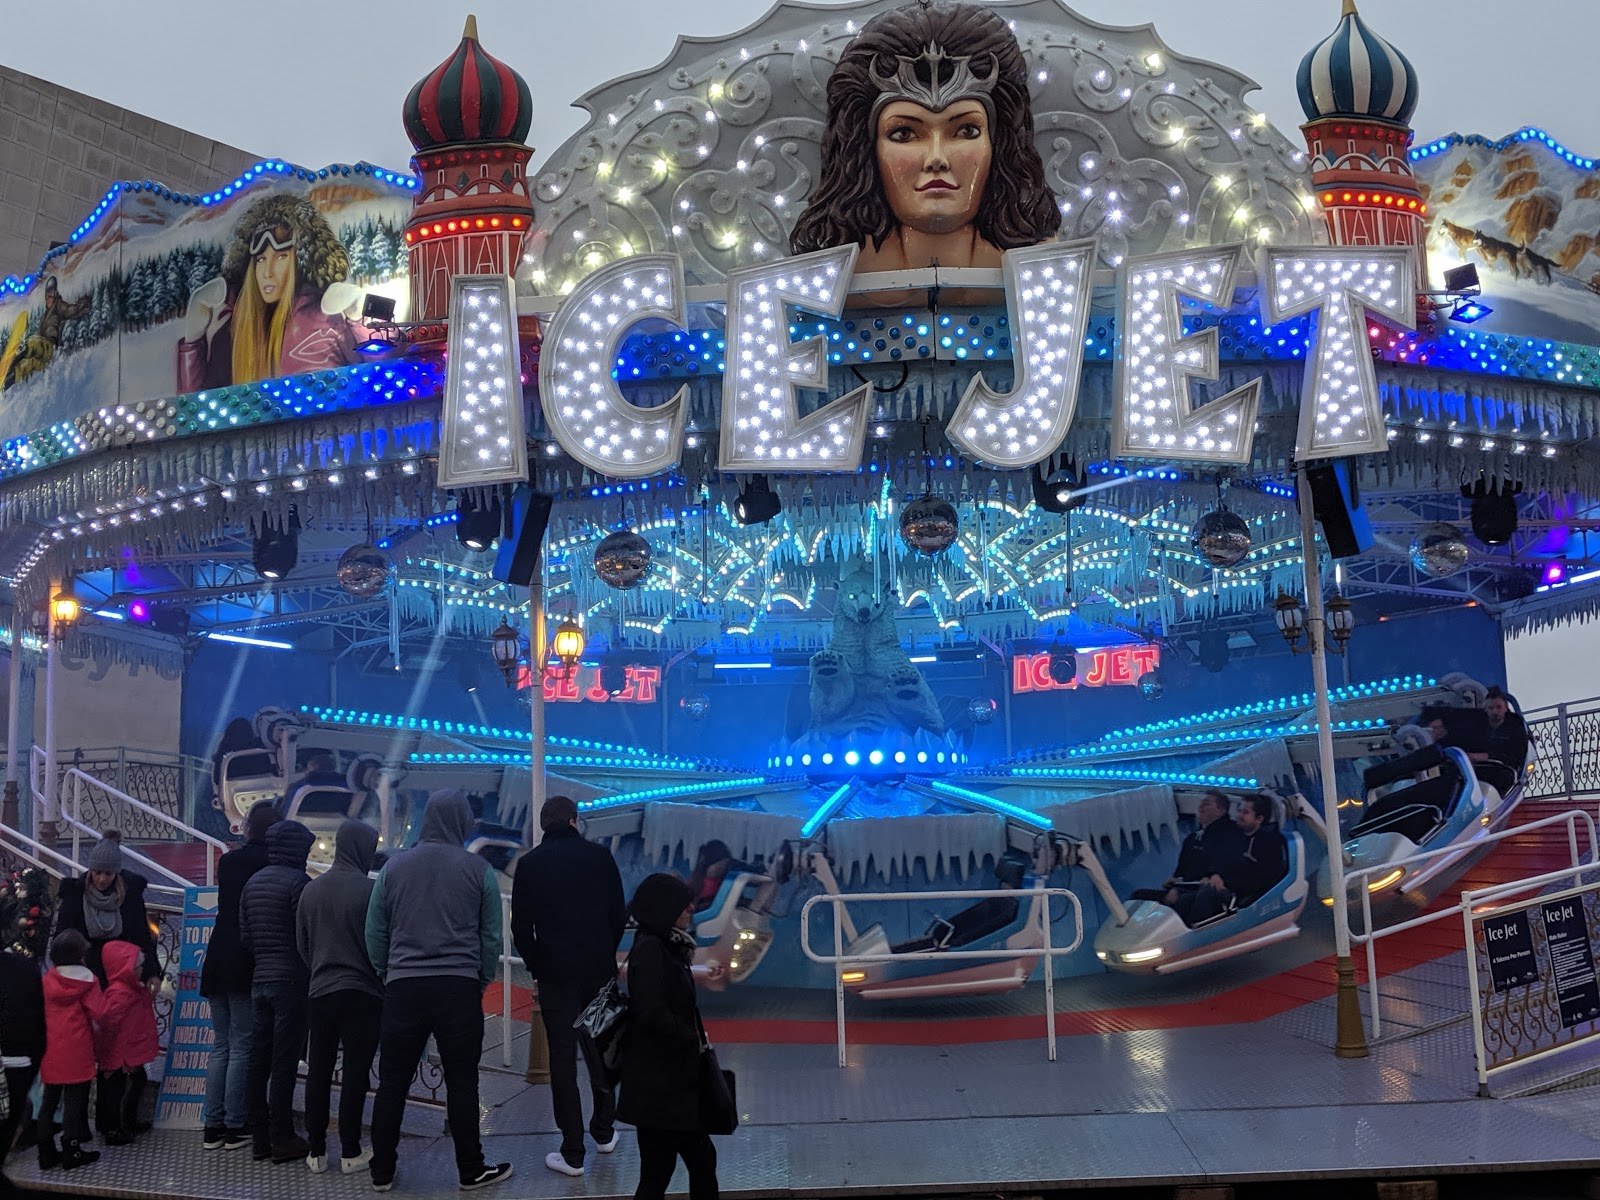 A Guide to Visiting Liverpool Christmas Markets & Lights  - Liverpool Ice Festival Ice Jet Ride